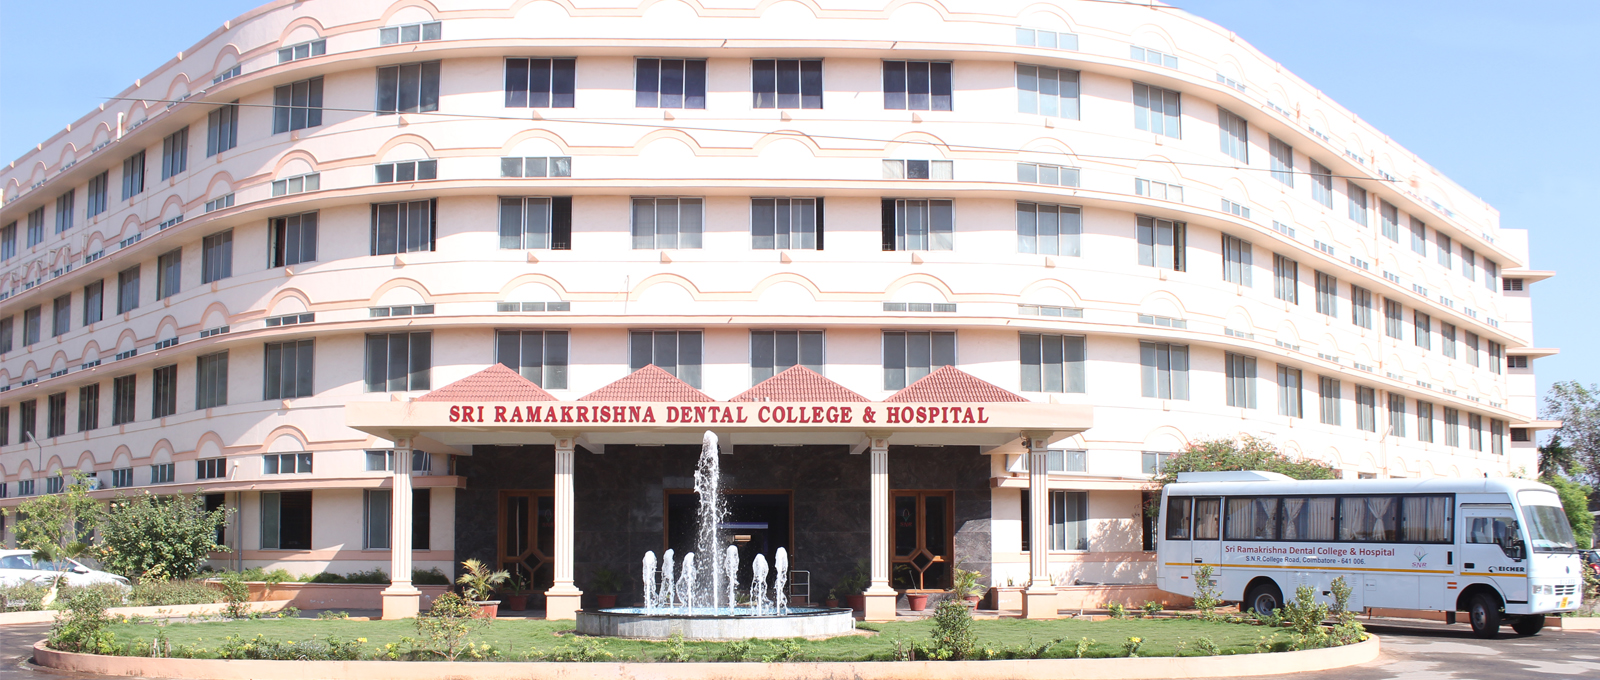 Sri Ramakrishna Dental College and Hospital